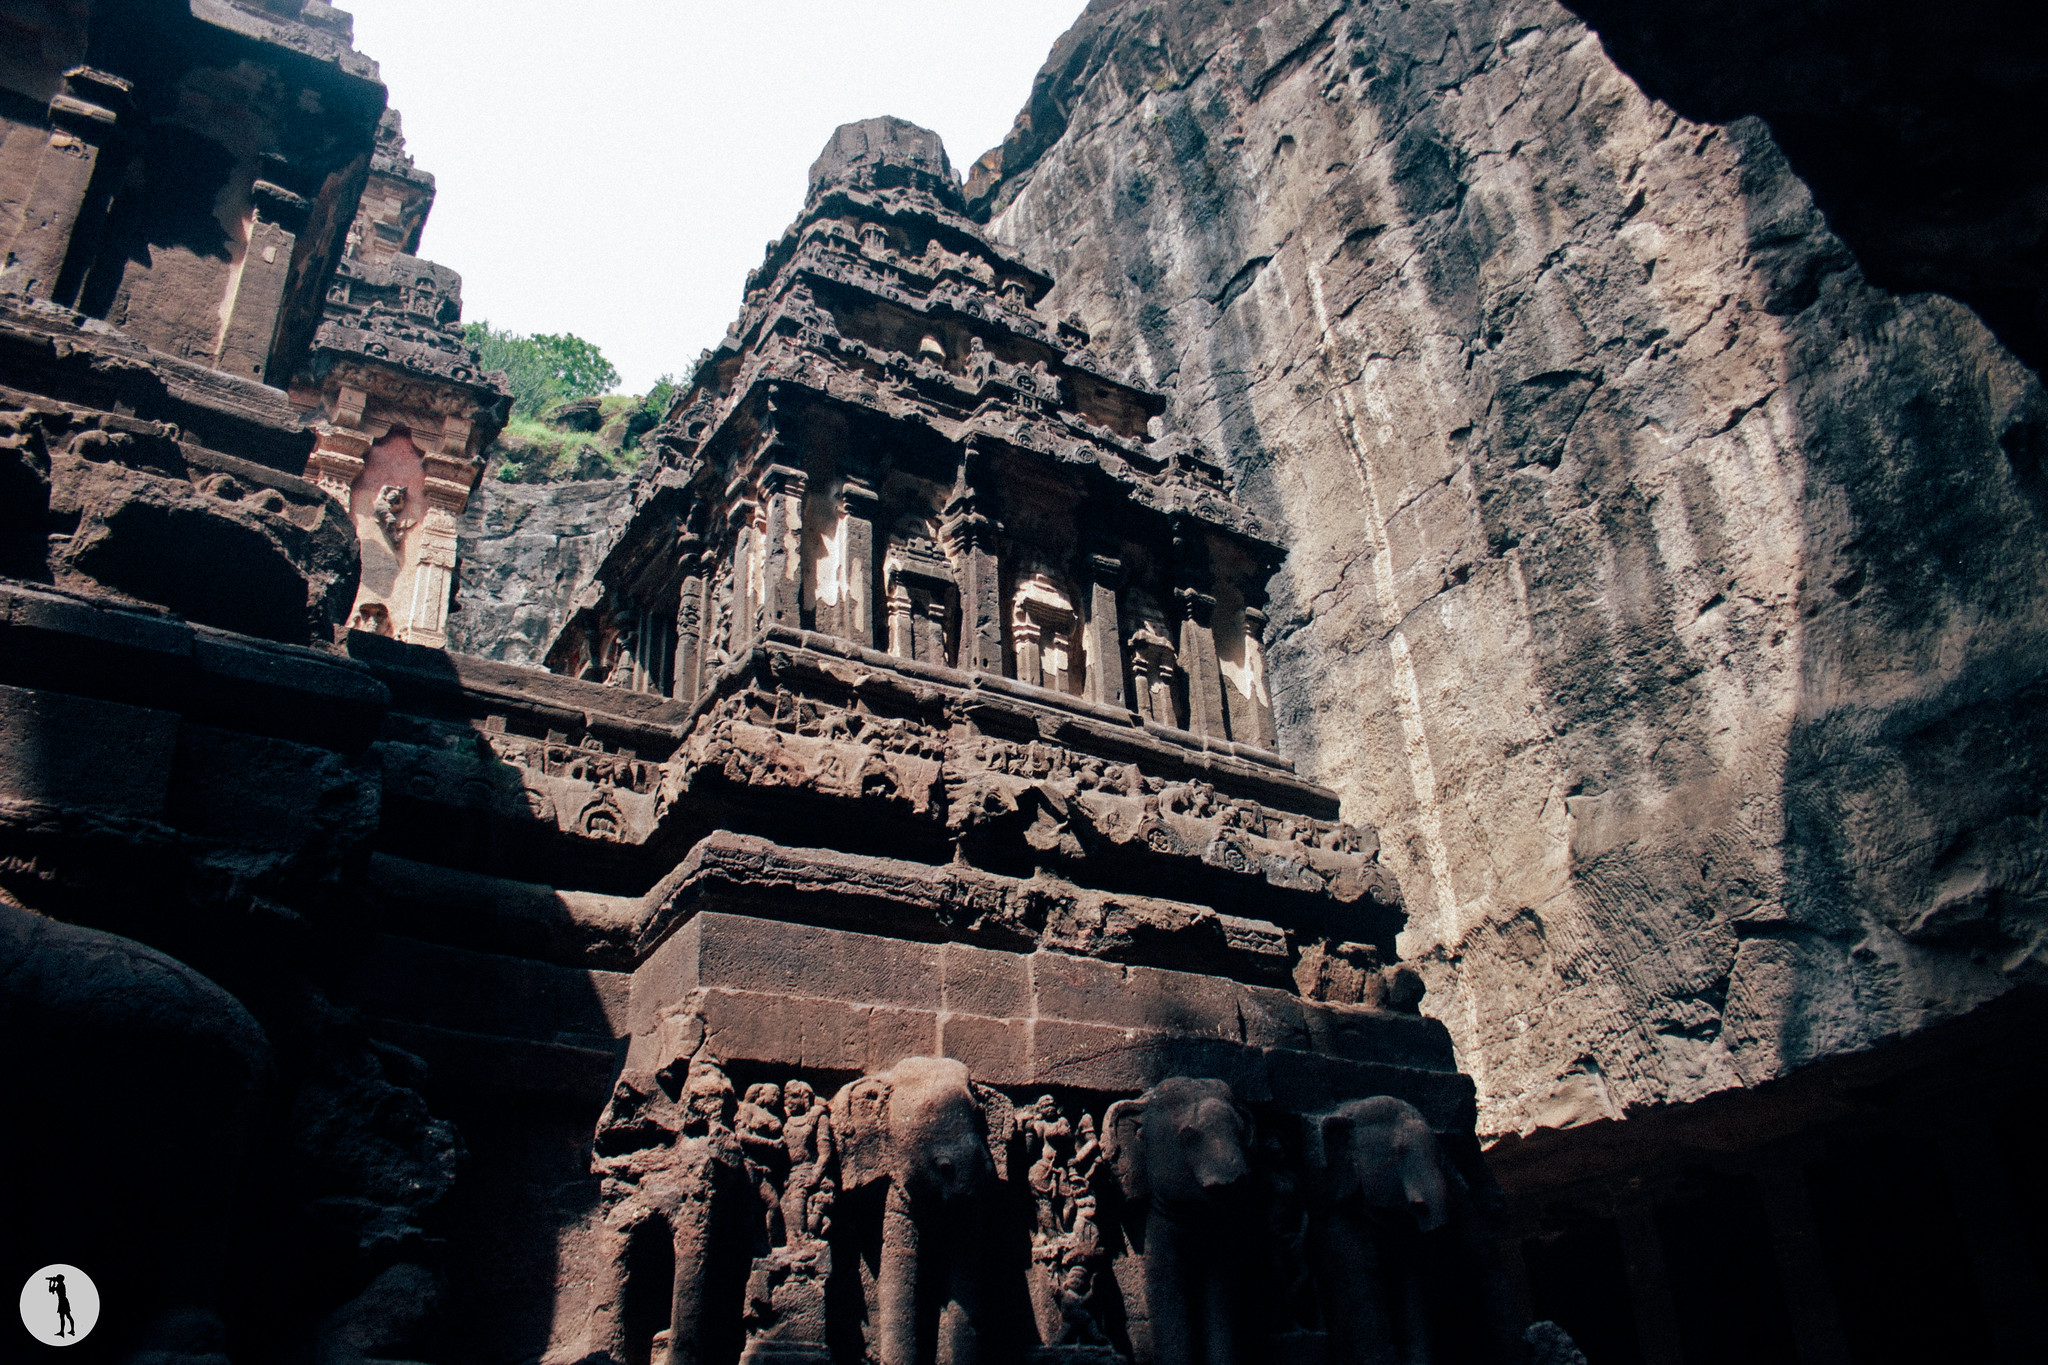 INDIA: Ellora Caves